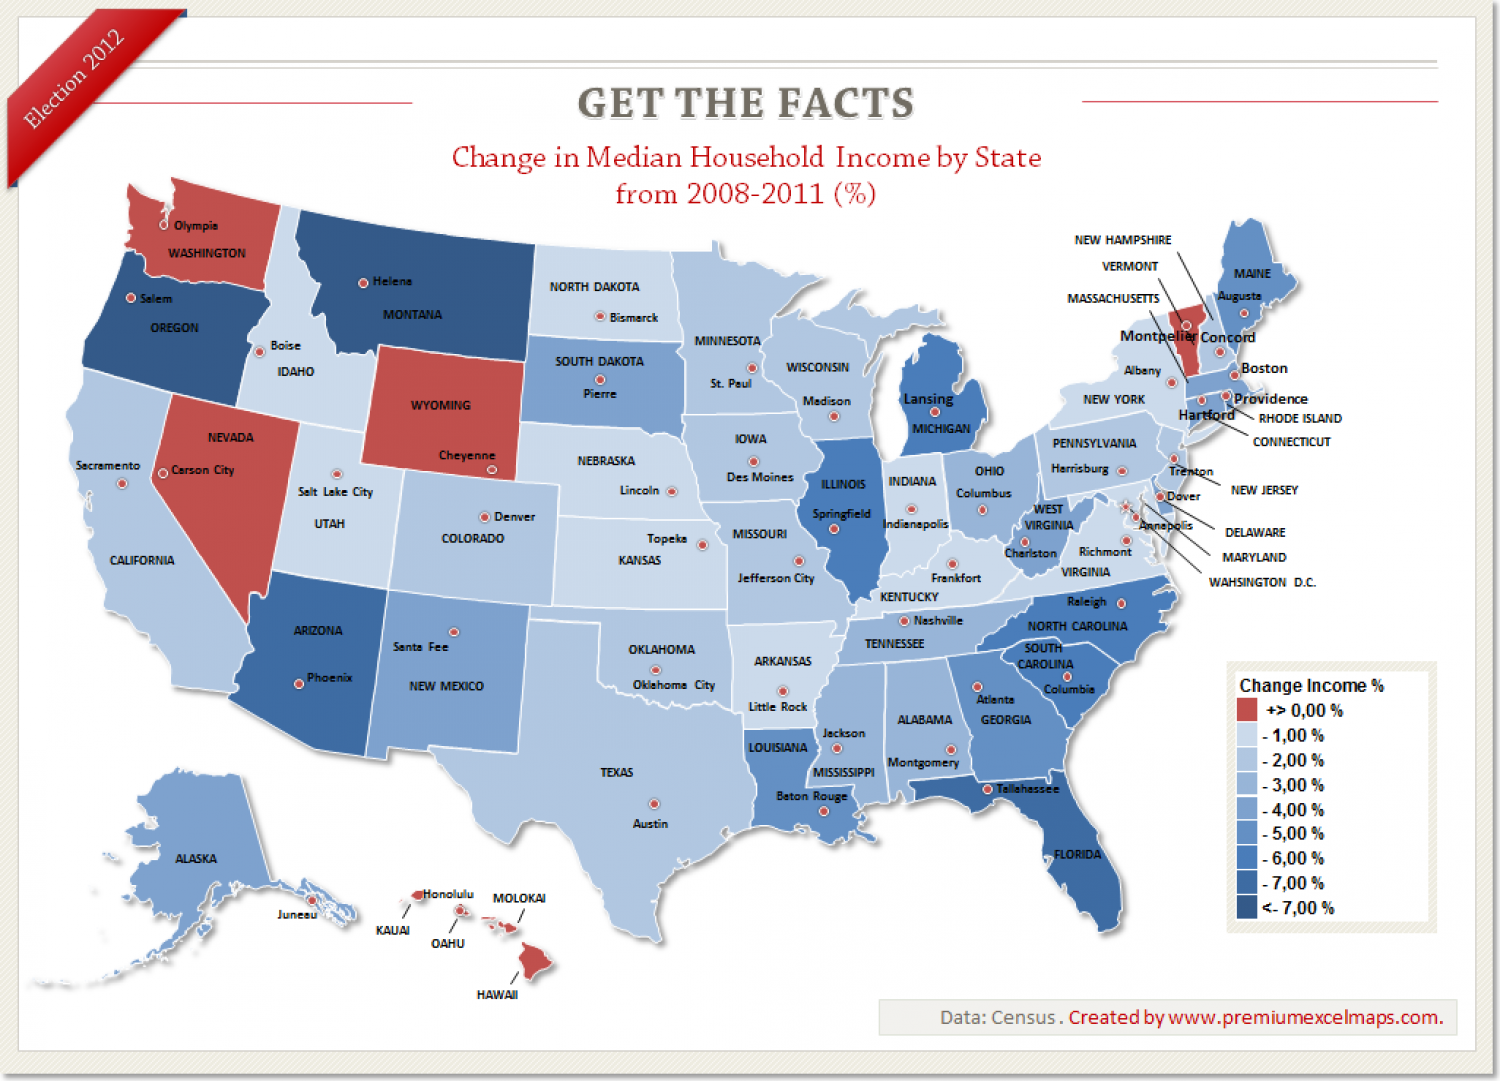 Get the Facts - Change in Median Household Income by State Infographic